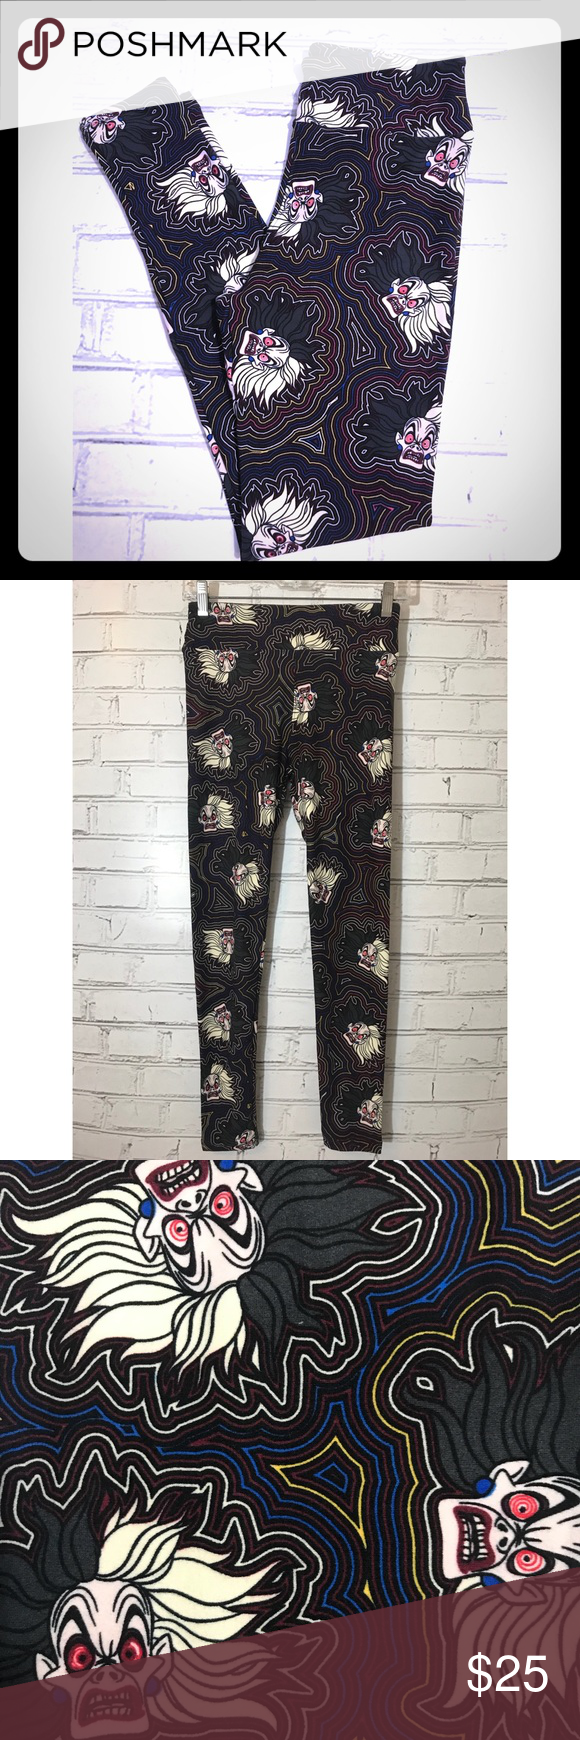 60d69191b02f62 LulaRoe, Disney Cruella Deville, OS Leggings Brand new. Buttery soft and  super comfortable! Featuring Cruella Deville from Disney's 101 Dalmatians.